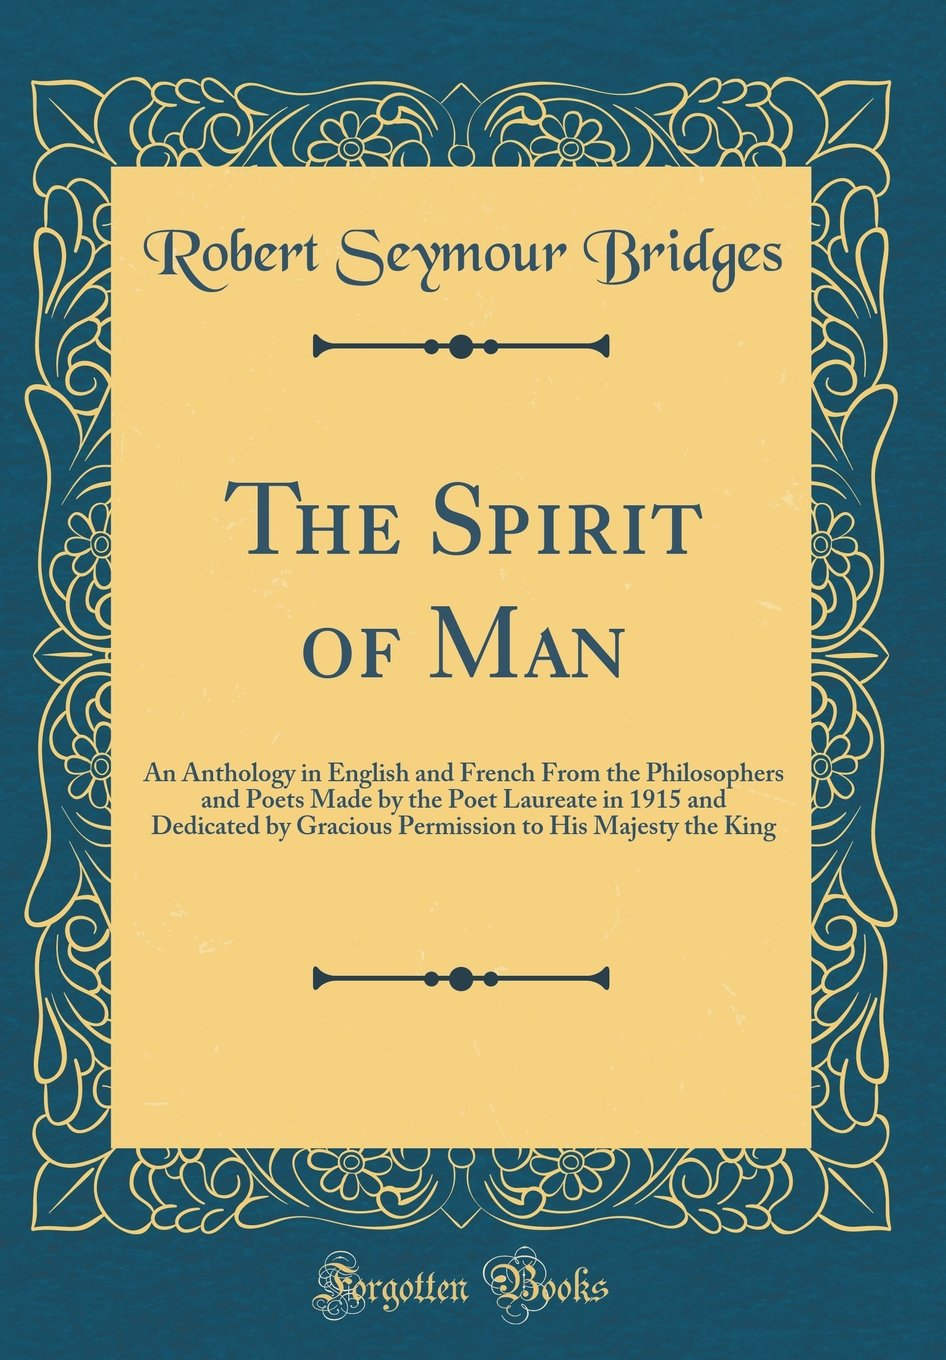 Download The Spirit of Man: An Anthology in English and French From the Philosophers and Poets Made by the Poet Laureate in 1915 and Dedicated by Gracious Permission to His Majesty the King (Classic Reprint) pdf